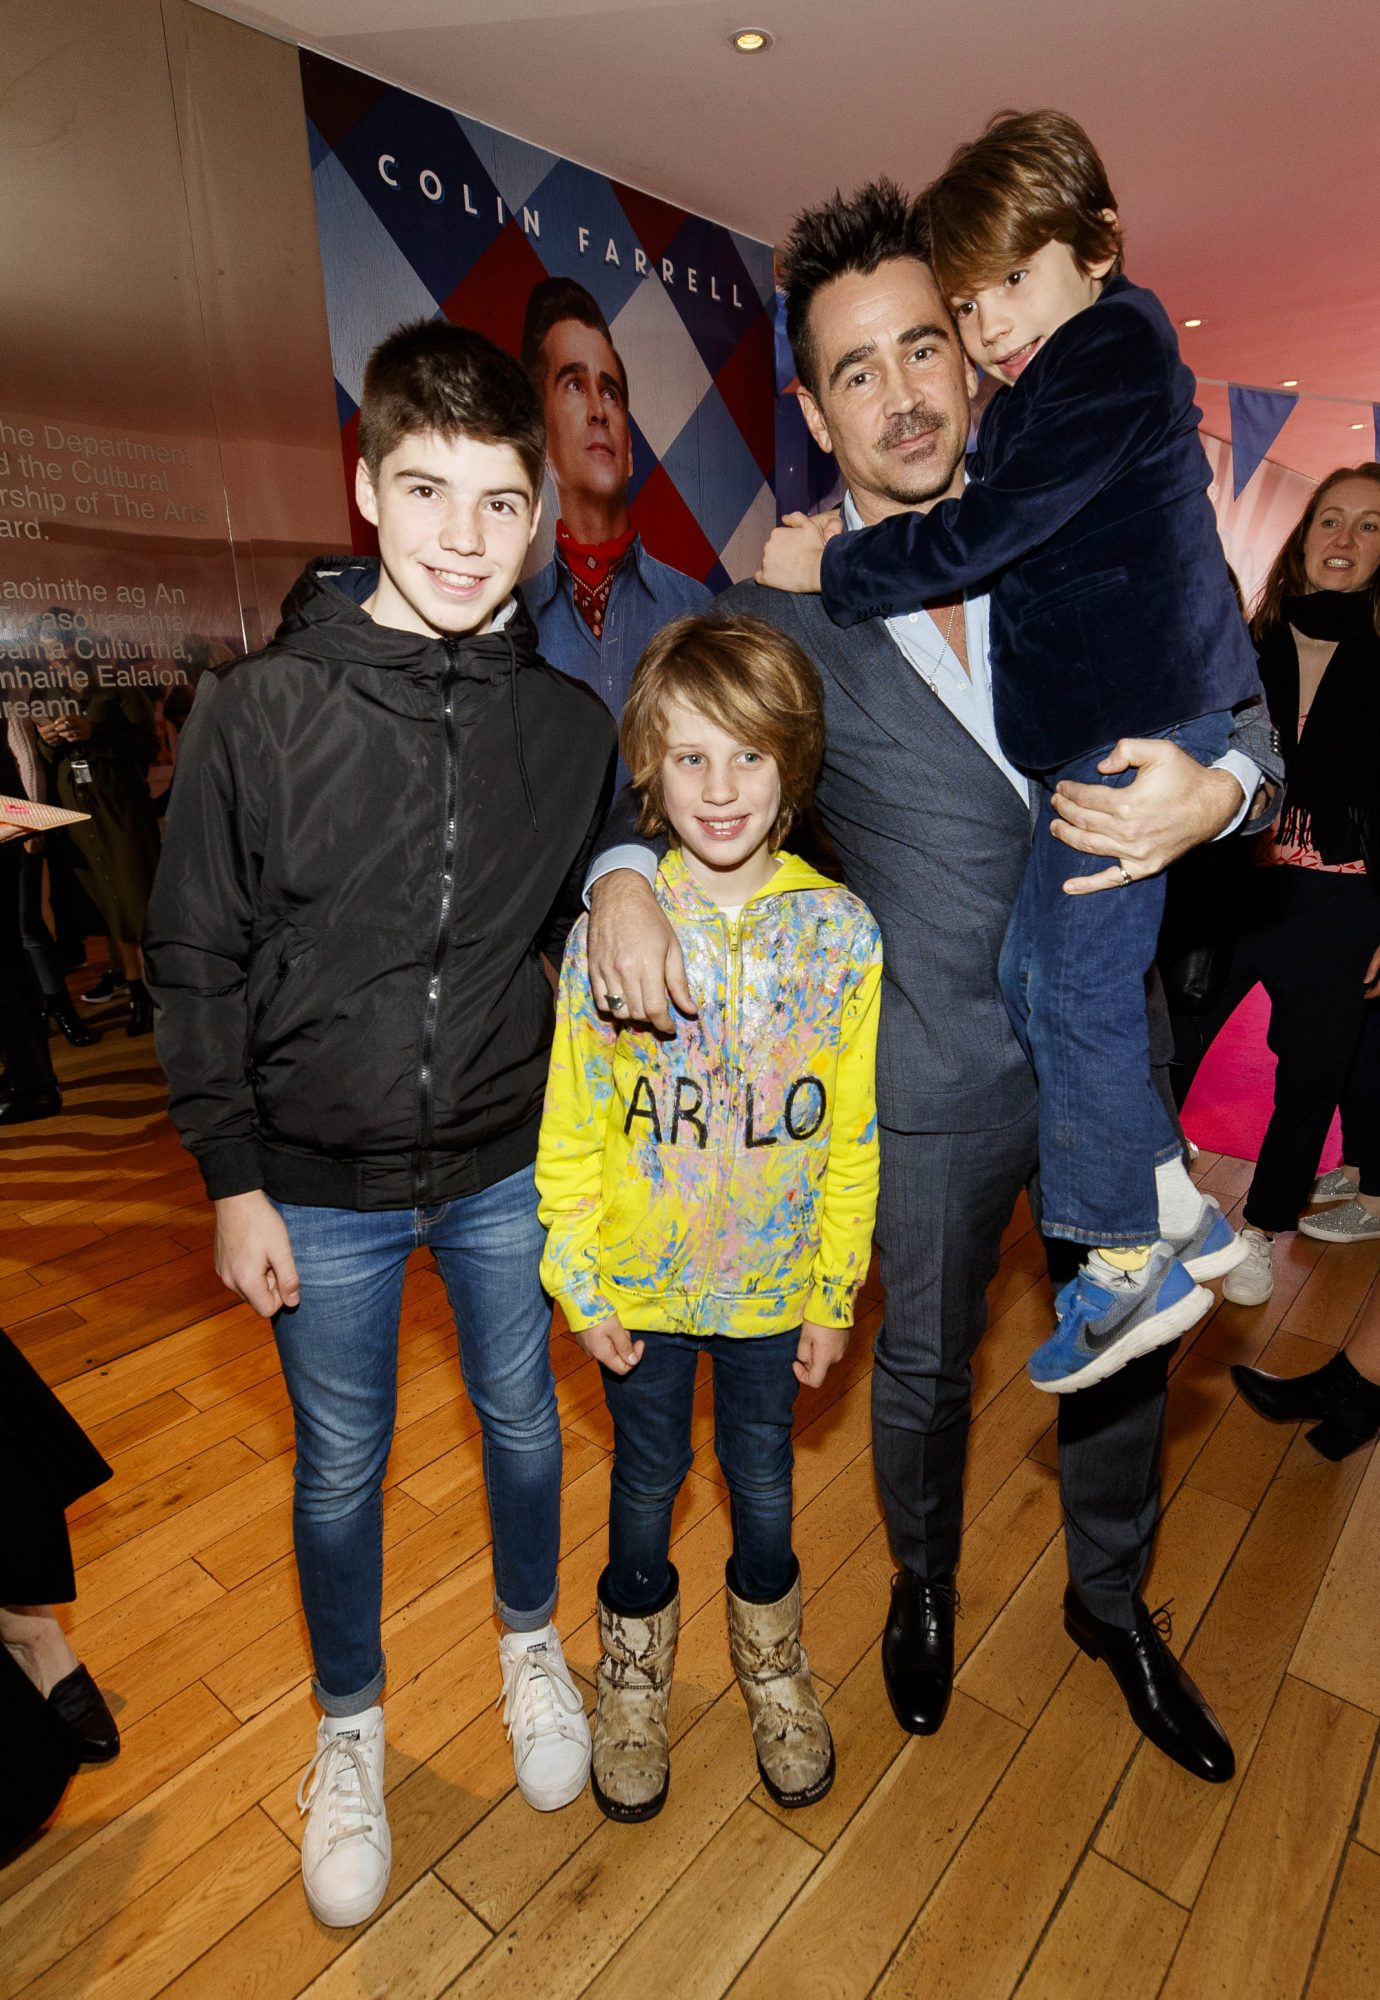 24/03/2019 Colin Farrell pictured with Alex (13), Arlo (9) and Casper Quick (6) on the red carpet at the Irish Premiere screening of Disney's DUMBO in the Light House Cinema Dublin. Picture: Andres Poveda